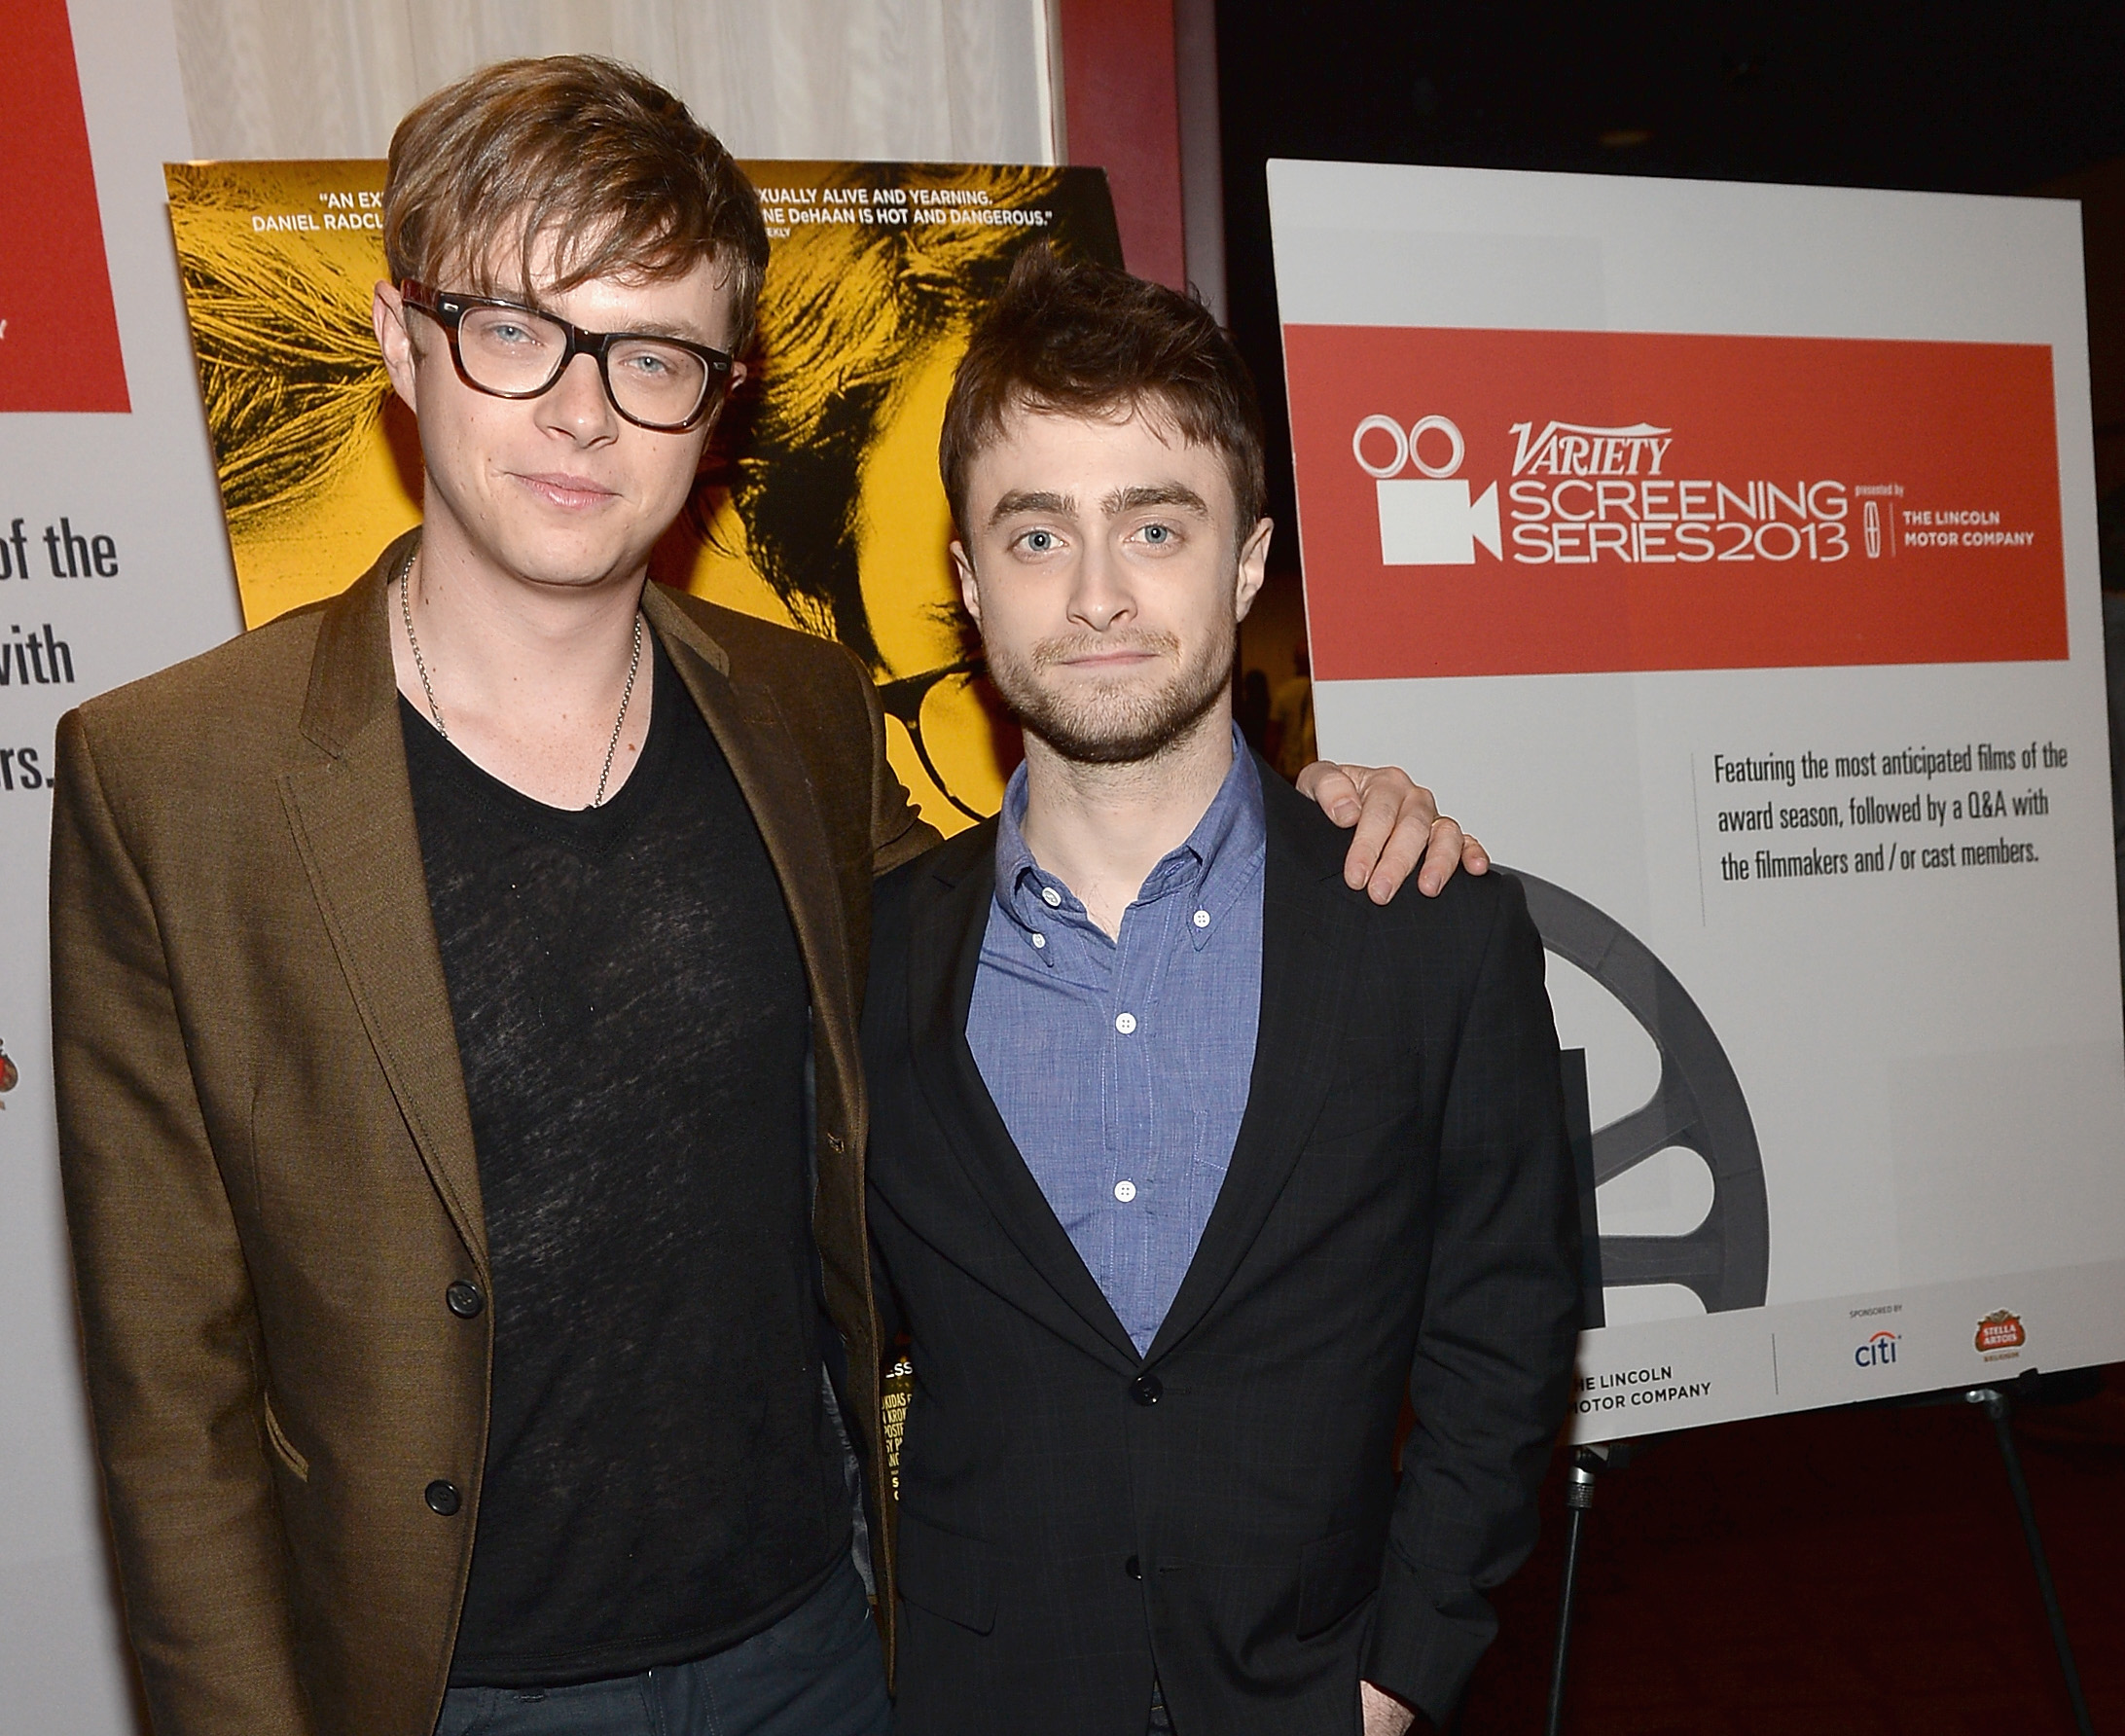 Radcliffe & DeHaan in As Lee Atwater & Karl Rove -- Vulture Daniel Radcliffe College